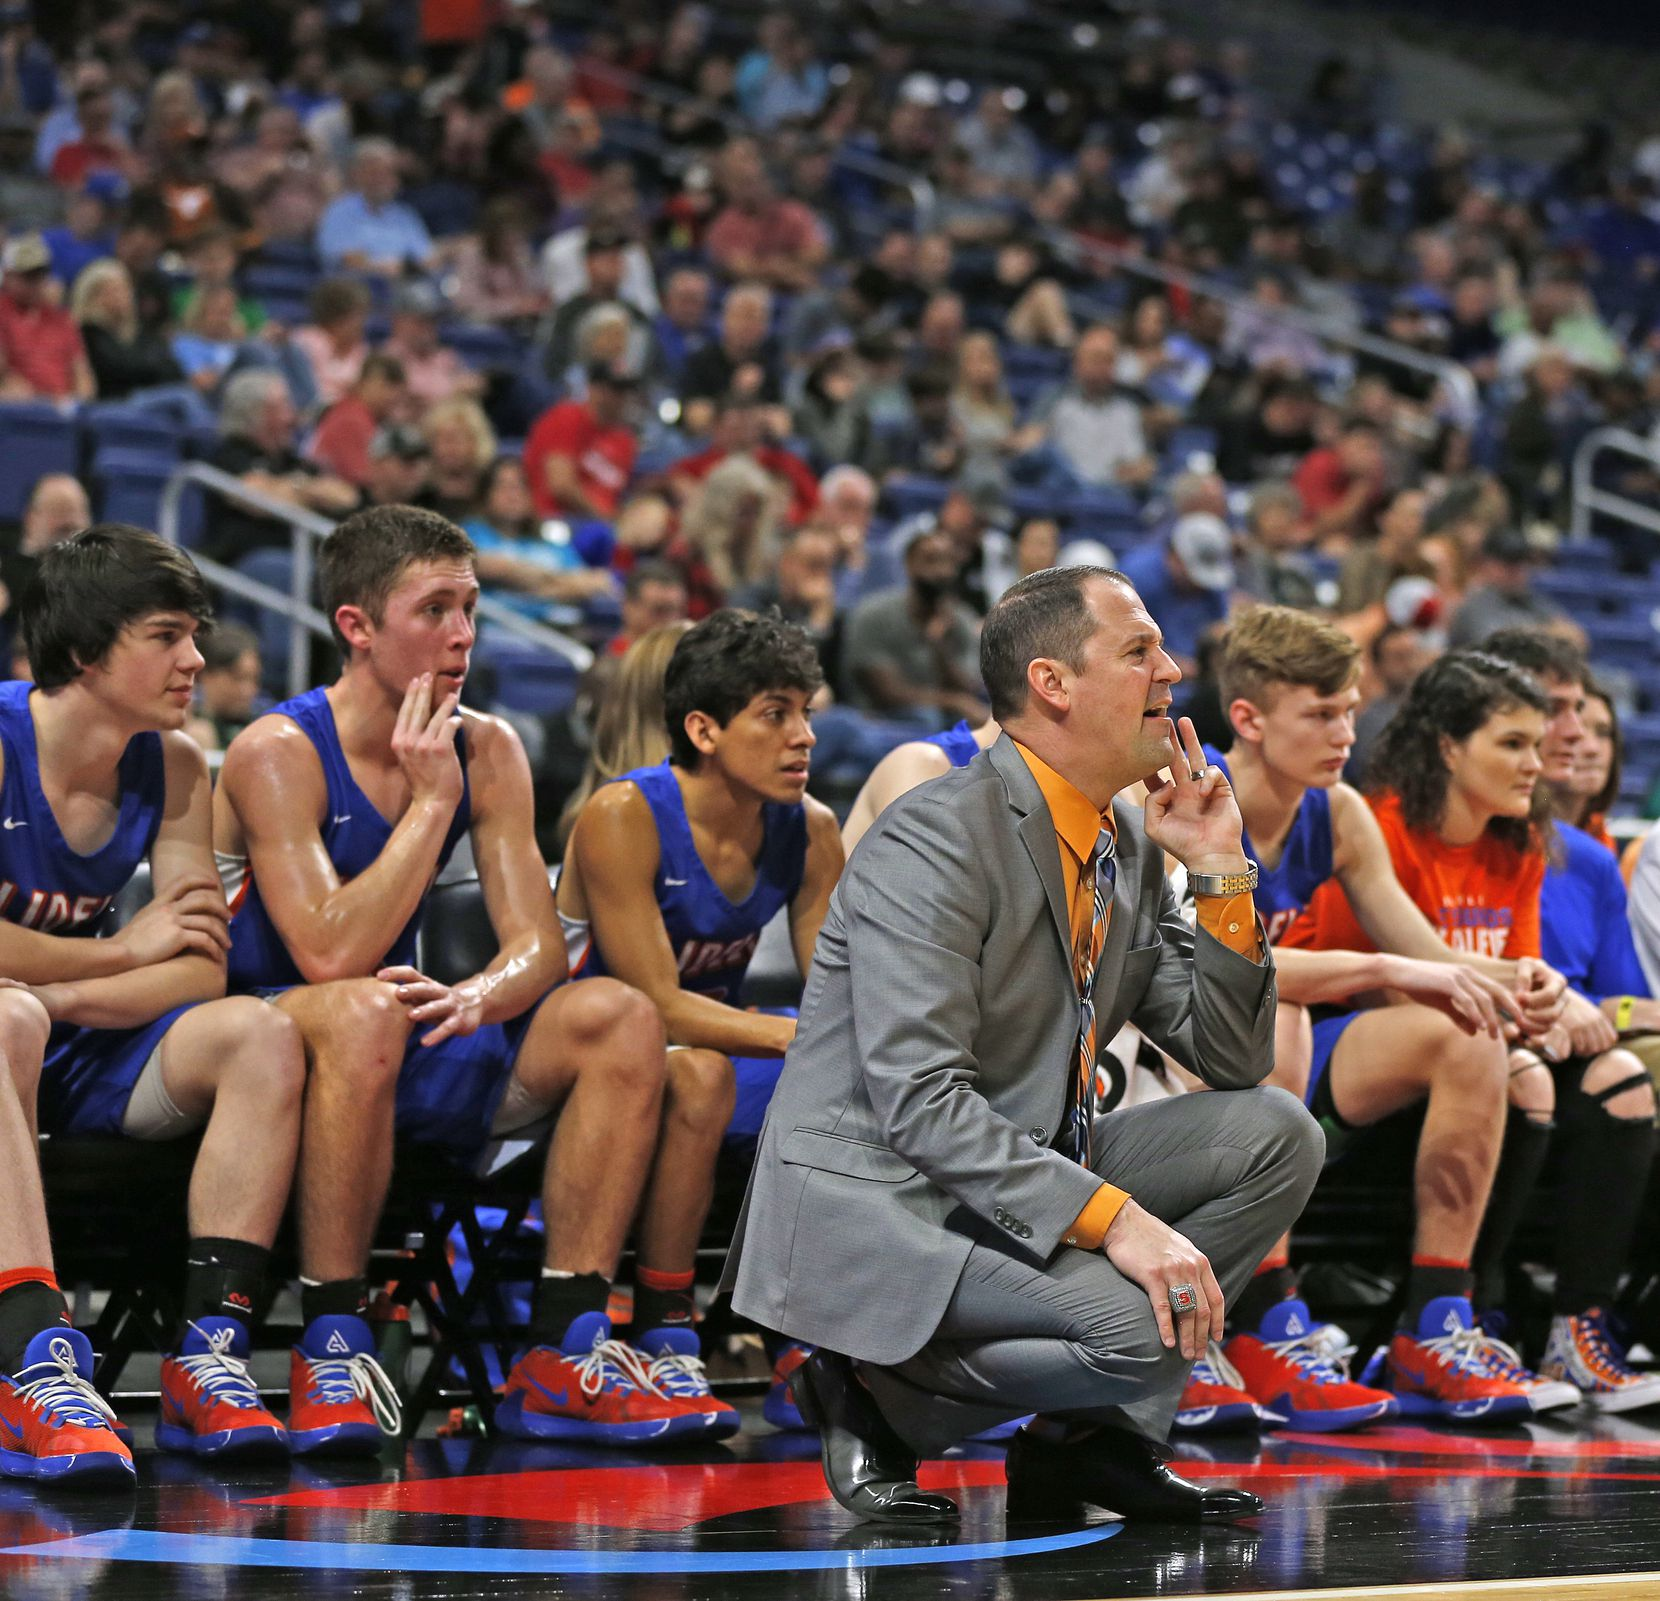 Slidell head coach Casey Pierce yells out instruction to his team. Slidell defeated Jayton 45-28 in a Class 1A semifinal game on Thursday, March 12, 2020 at the Alamodome.